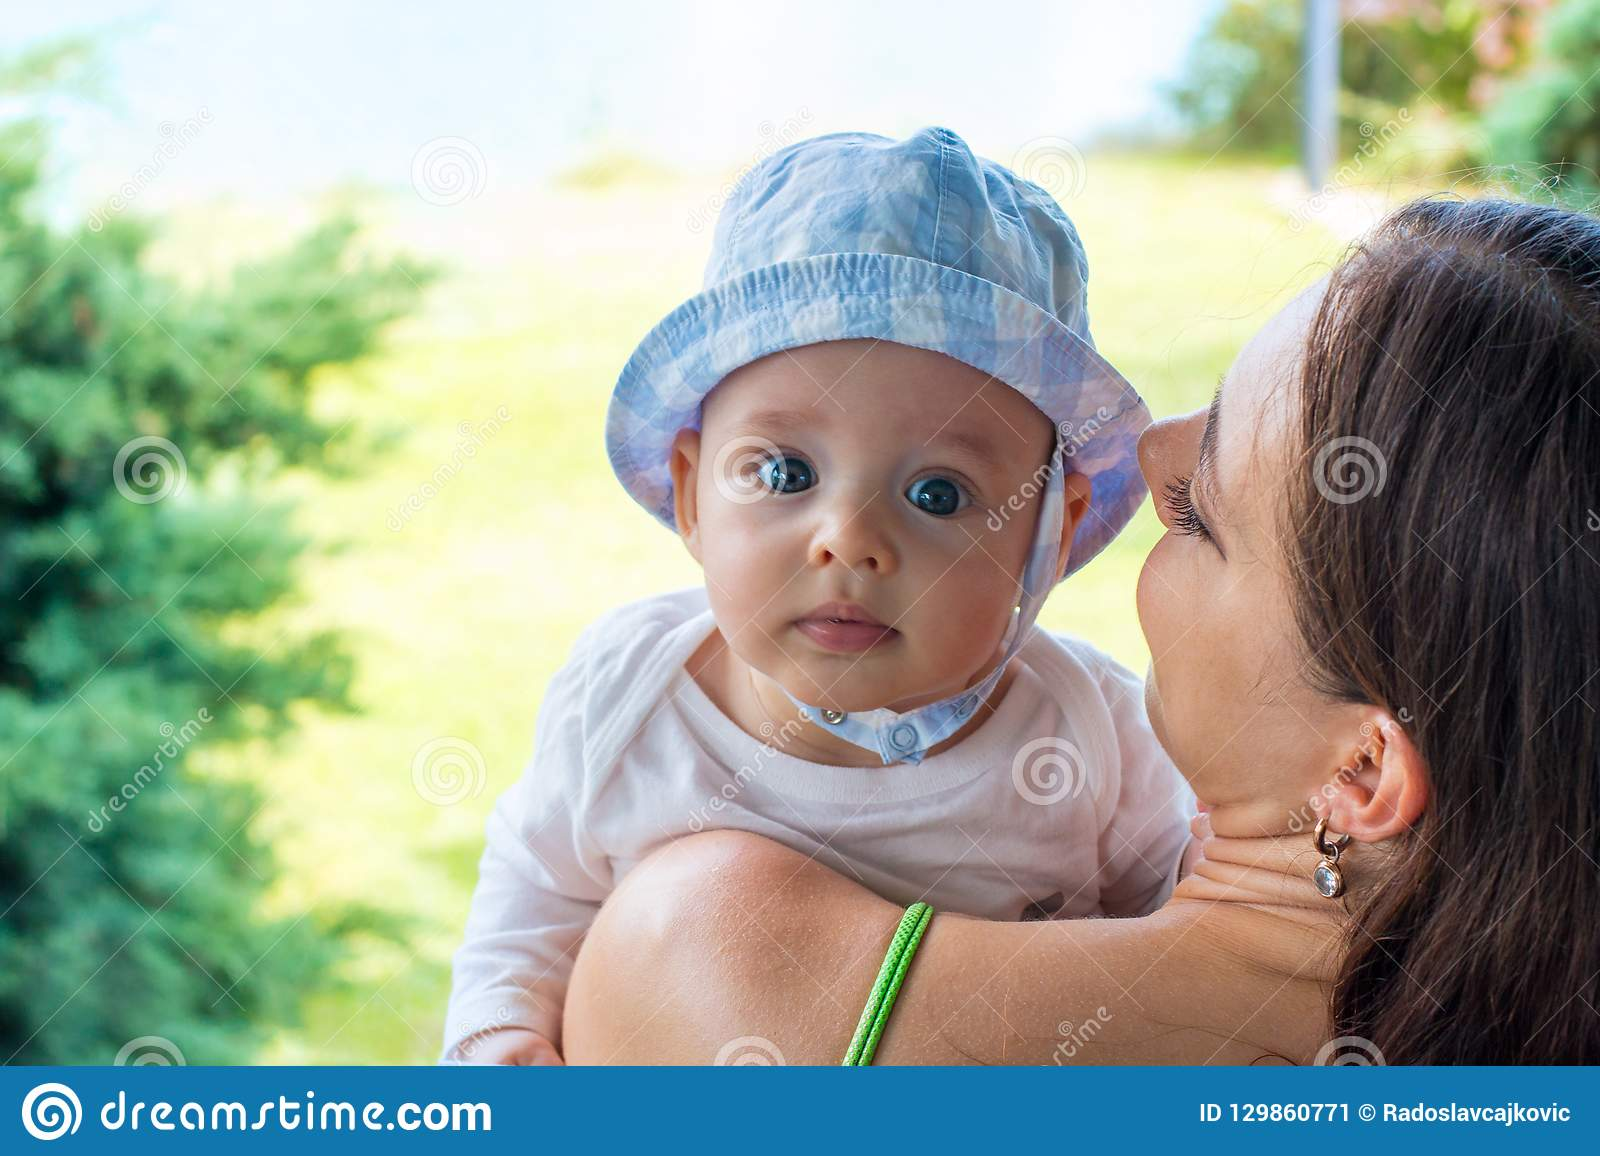 Pretty mother cuddle cute blue eyed baby in hat, infant face portrait